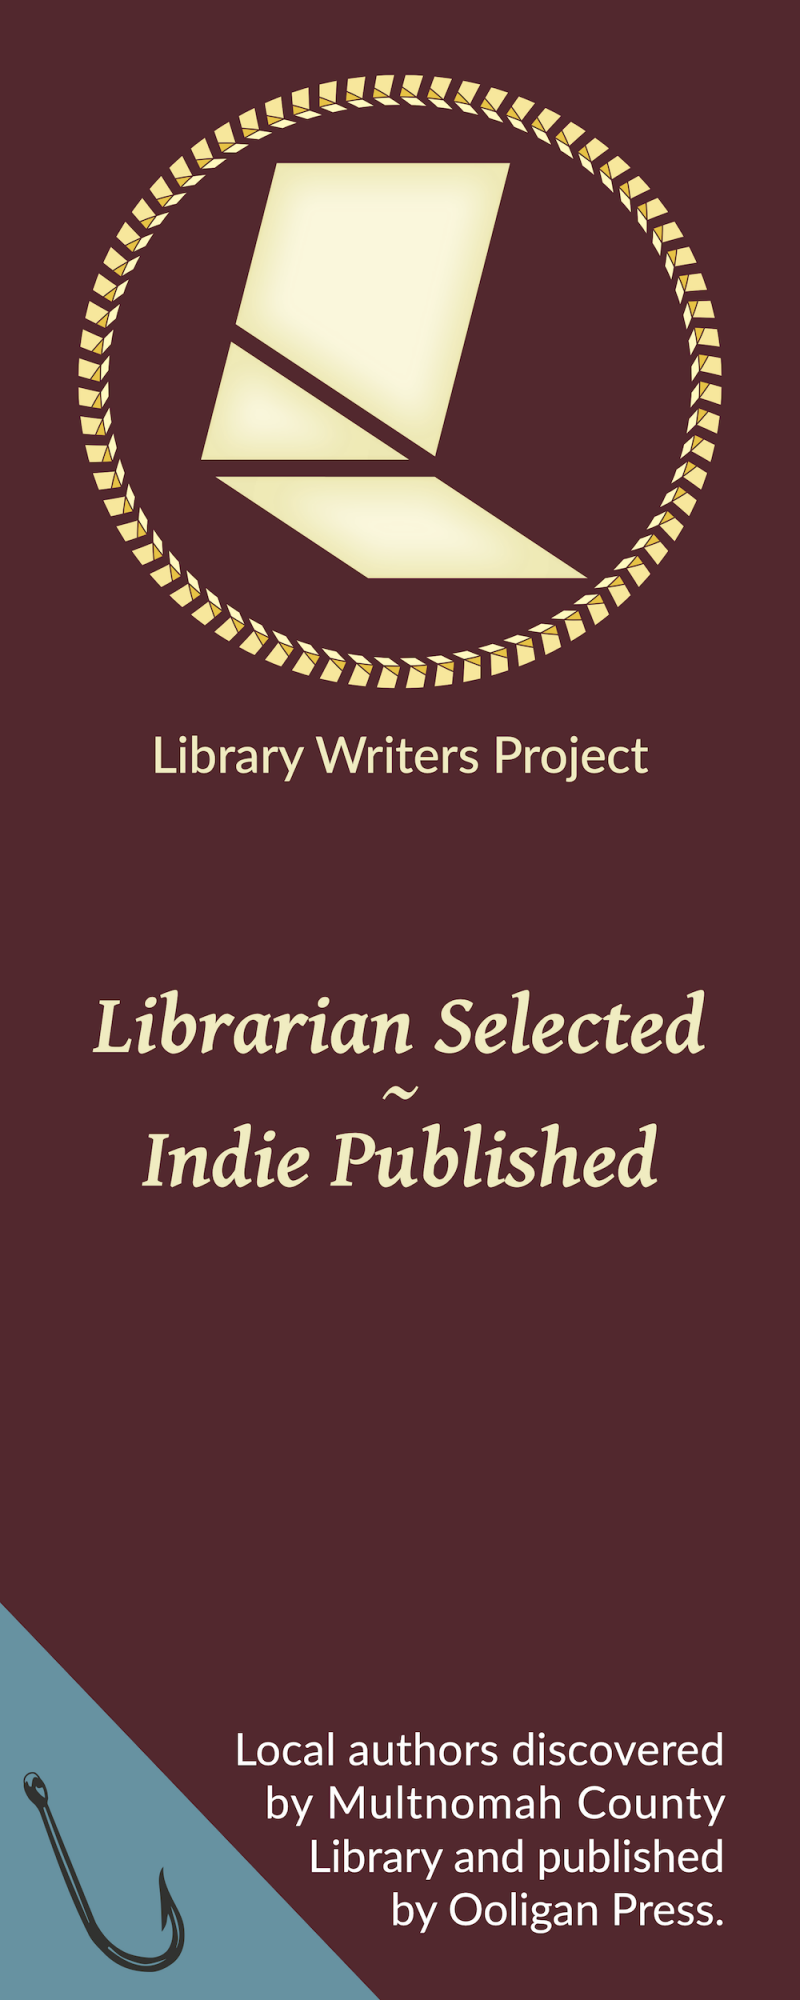 The Library Writers Project and Ooligan Press: Meet-Cute!